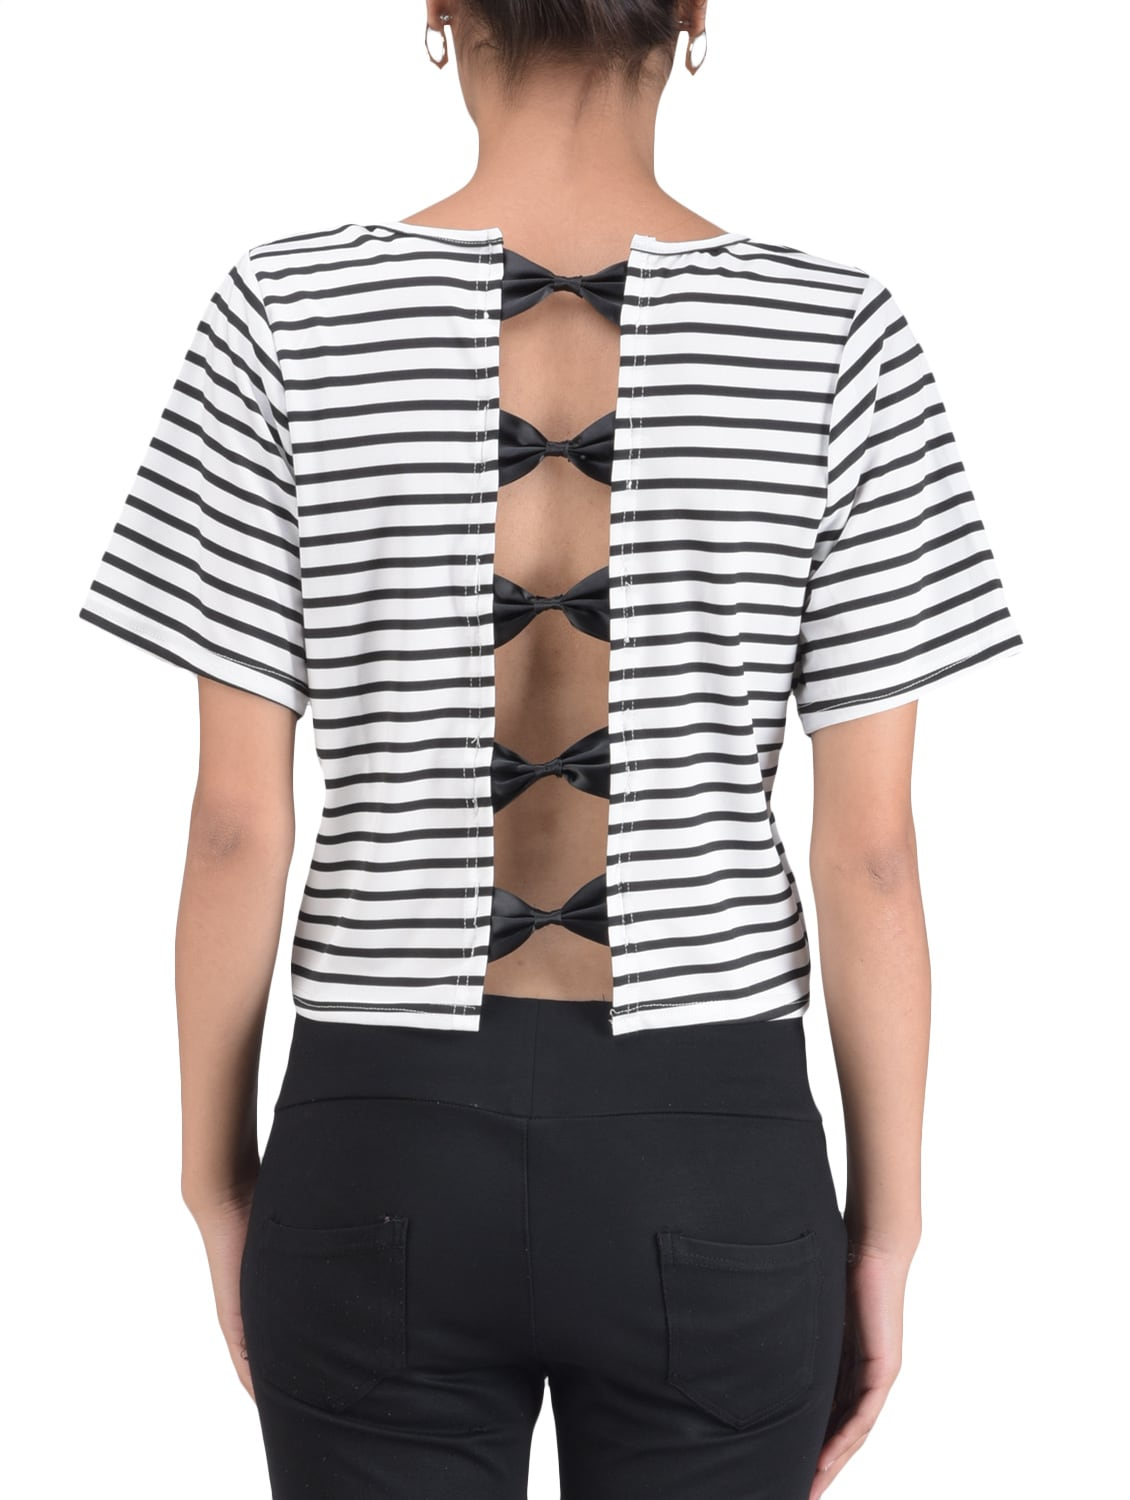 4ef01b8b087 Buy Black And White Striped Top for Women from Pink Lace for ₹999 at 41%  off   2019 Limeroad.com